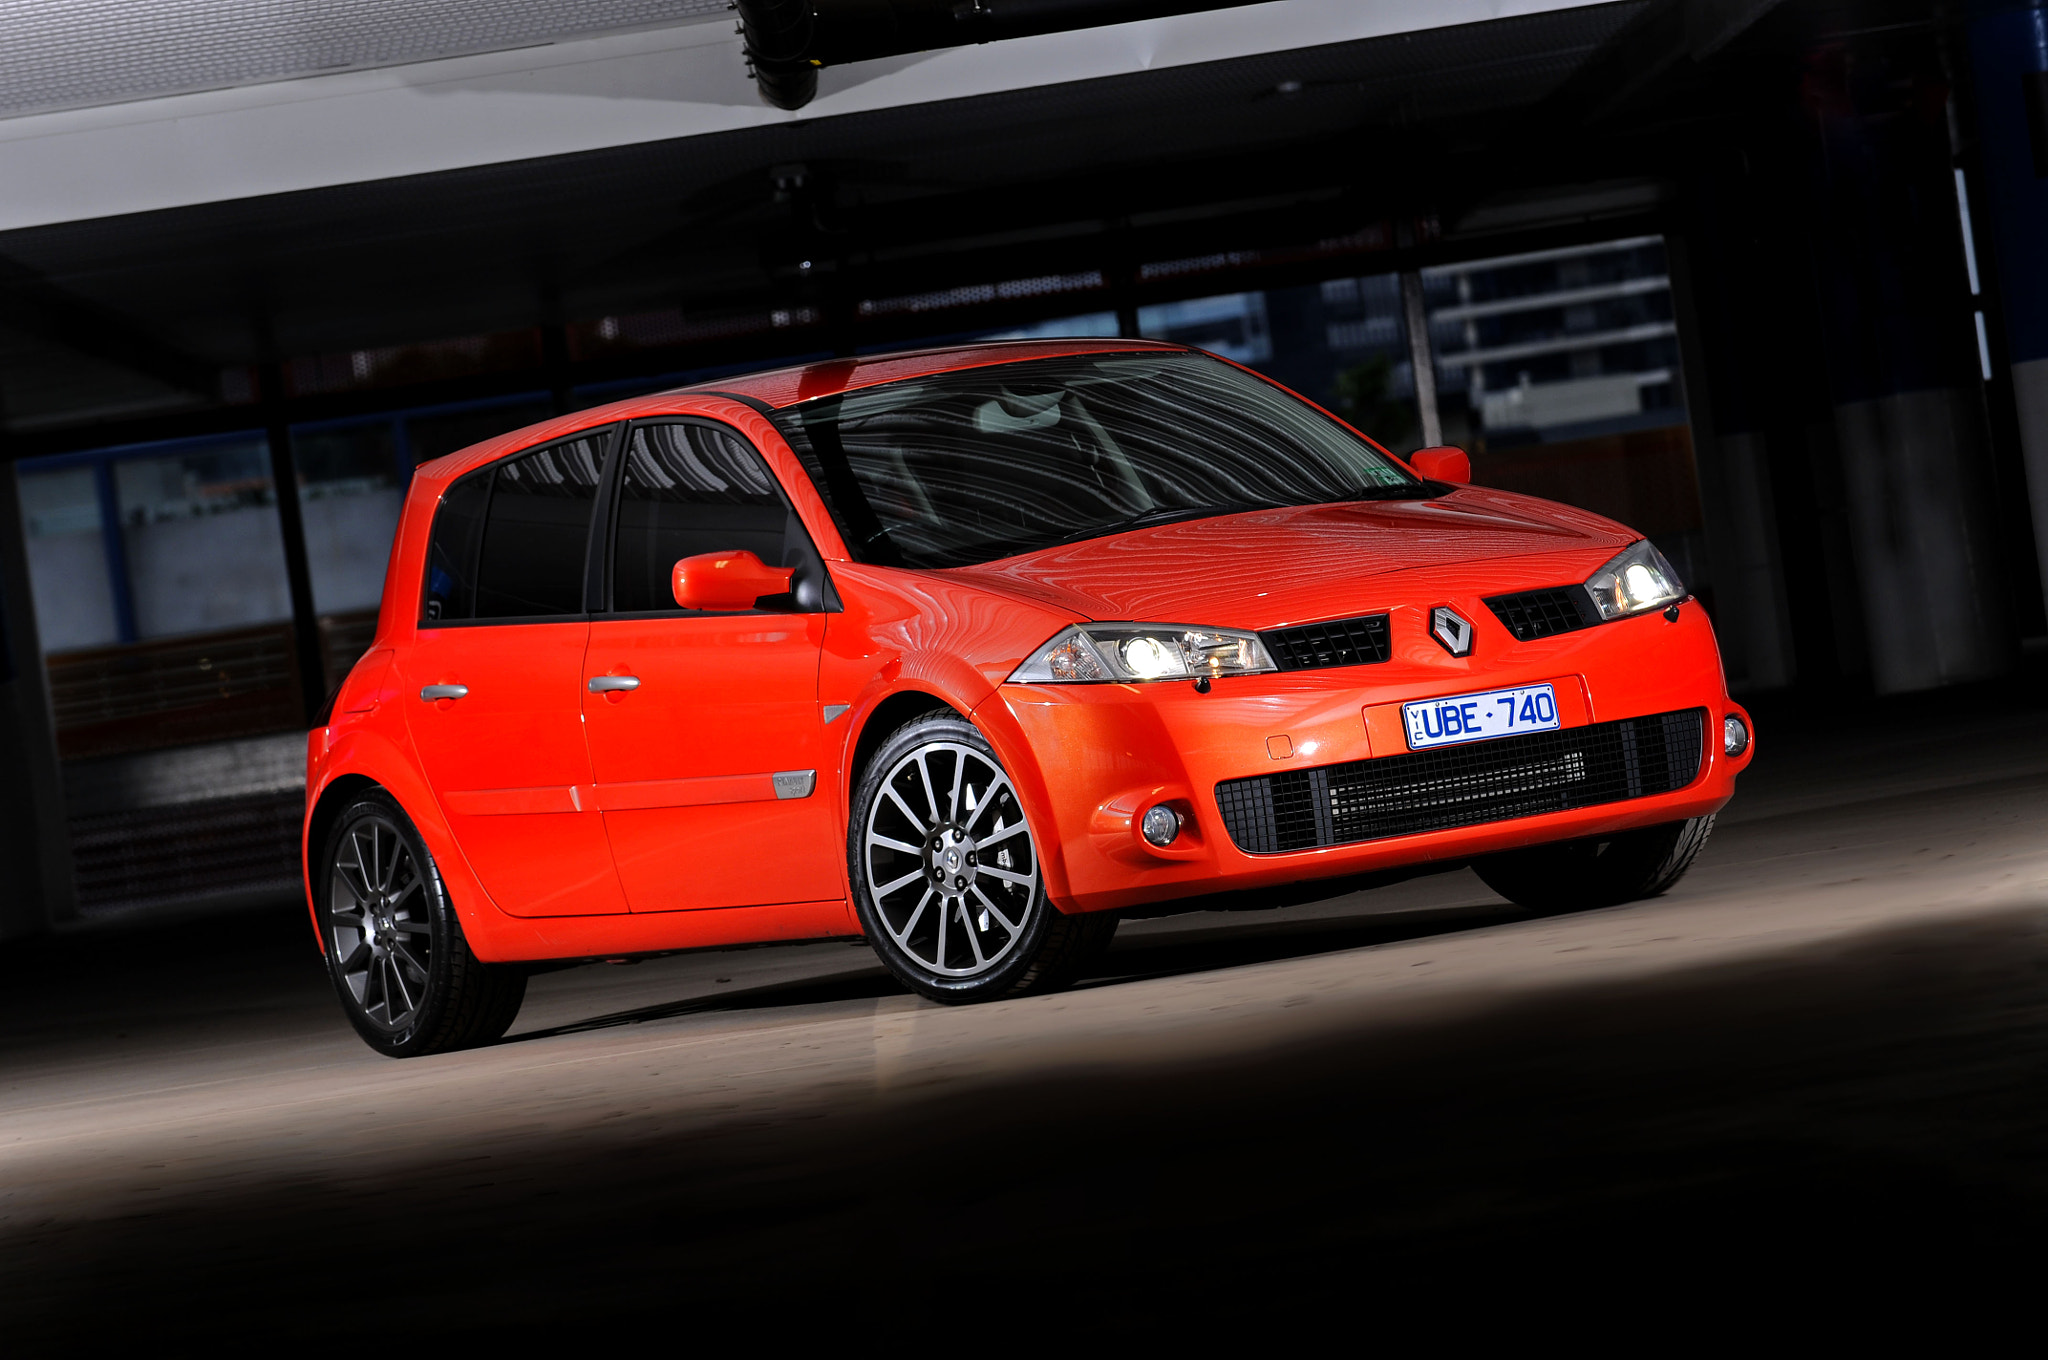 Photograph 2006 Renault Sport Megane 225 Cup - Blood Orange  by Joel Strickland on 500px